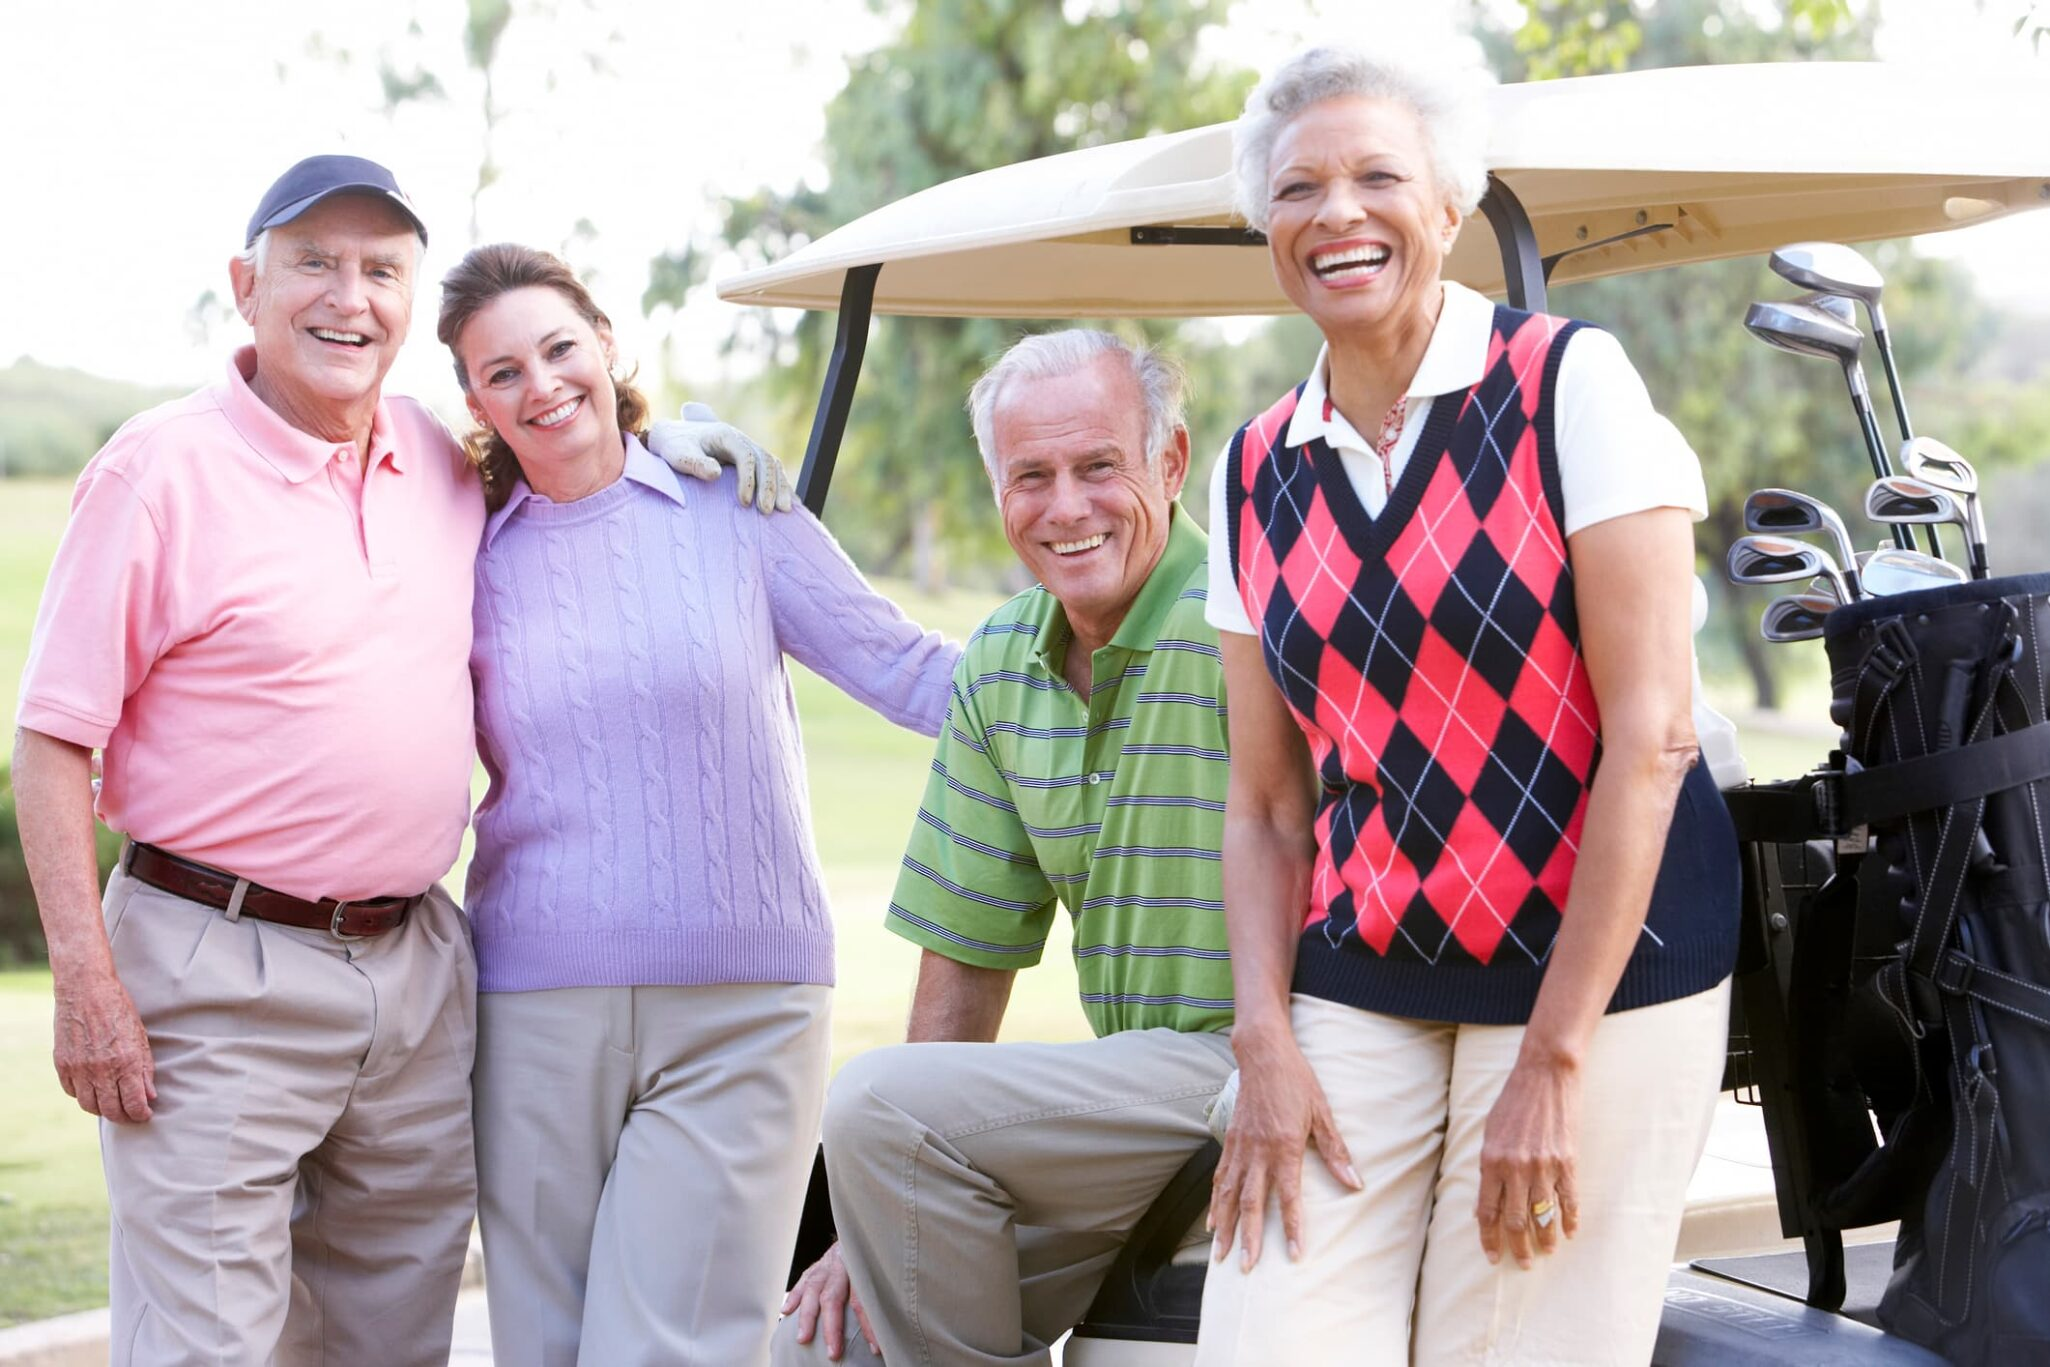 Four happy older adults having fun on the golf course